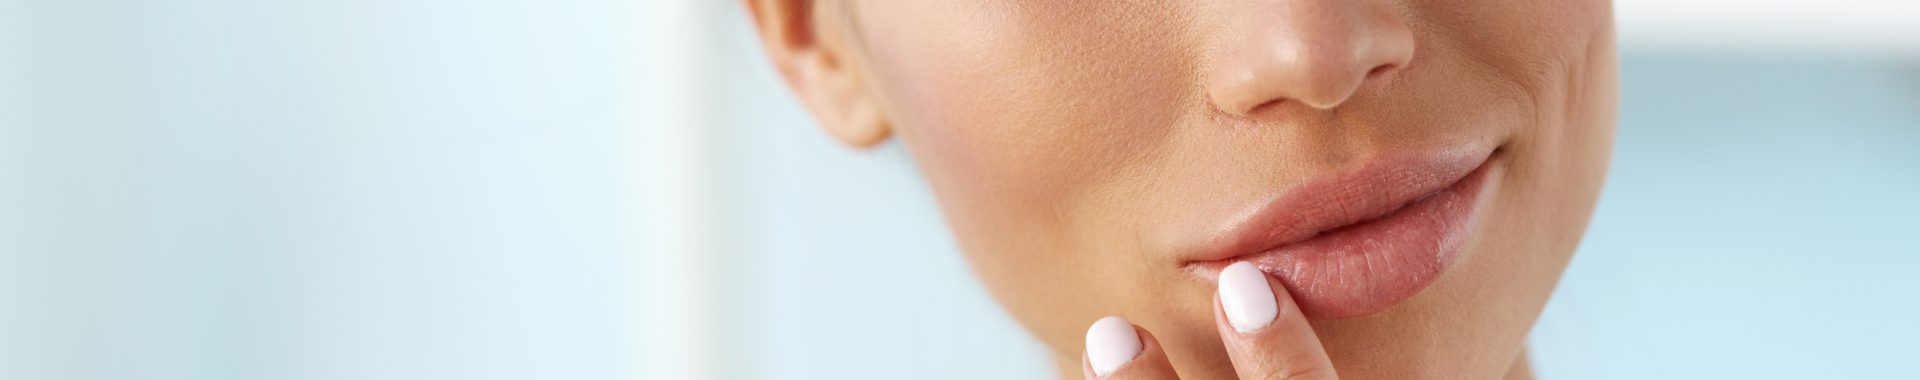 lips and jawline treatments banner